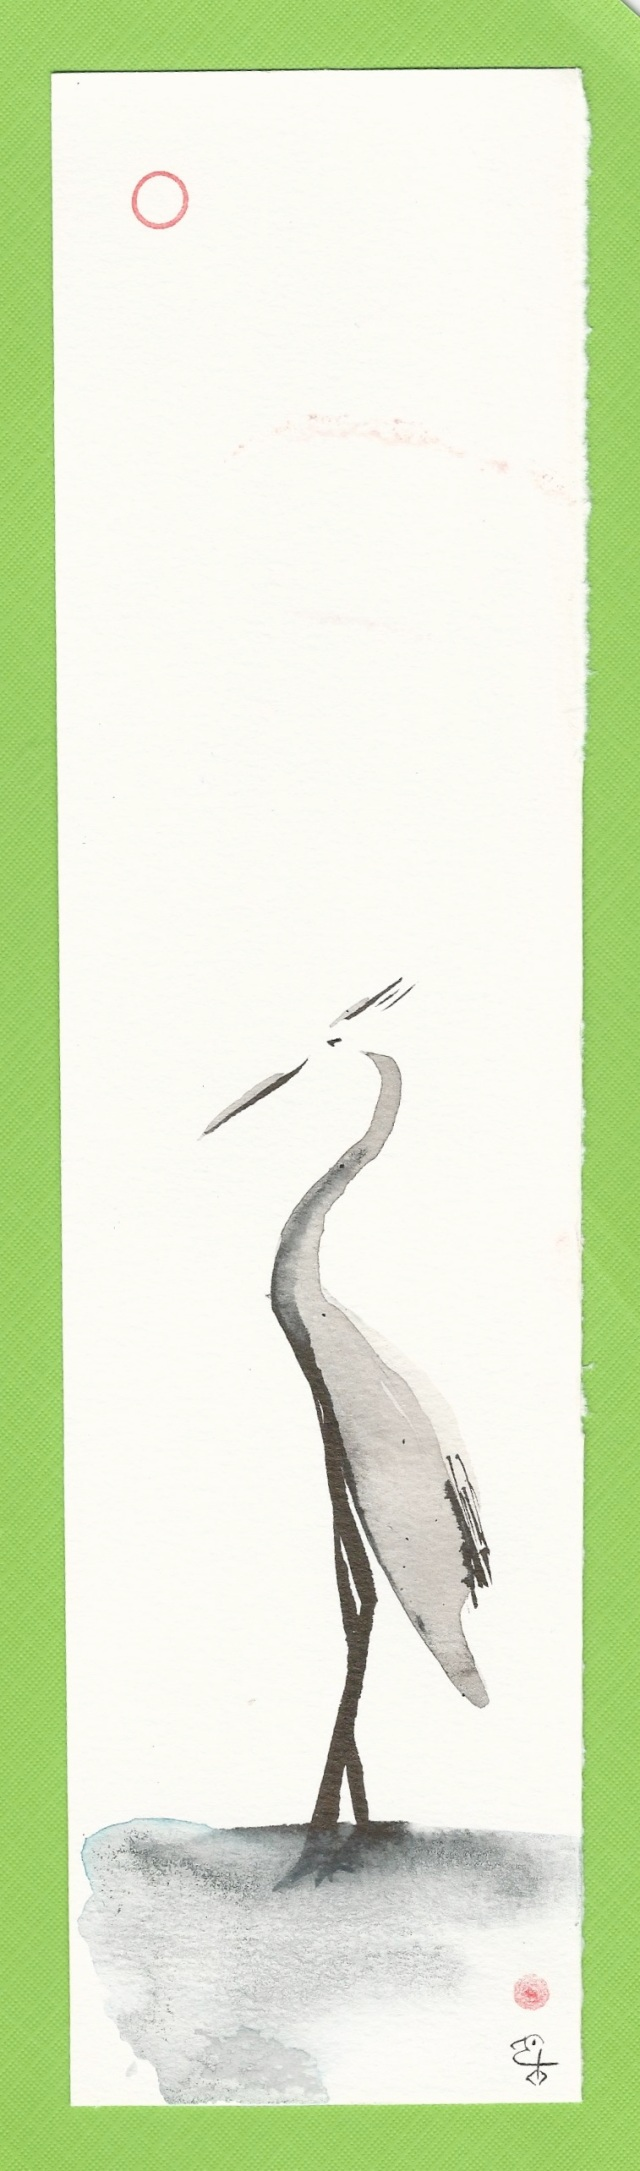 crane in water green